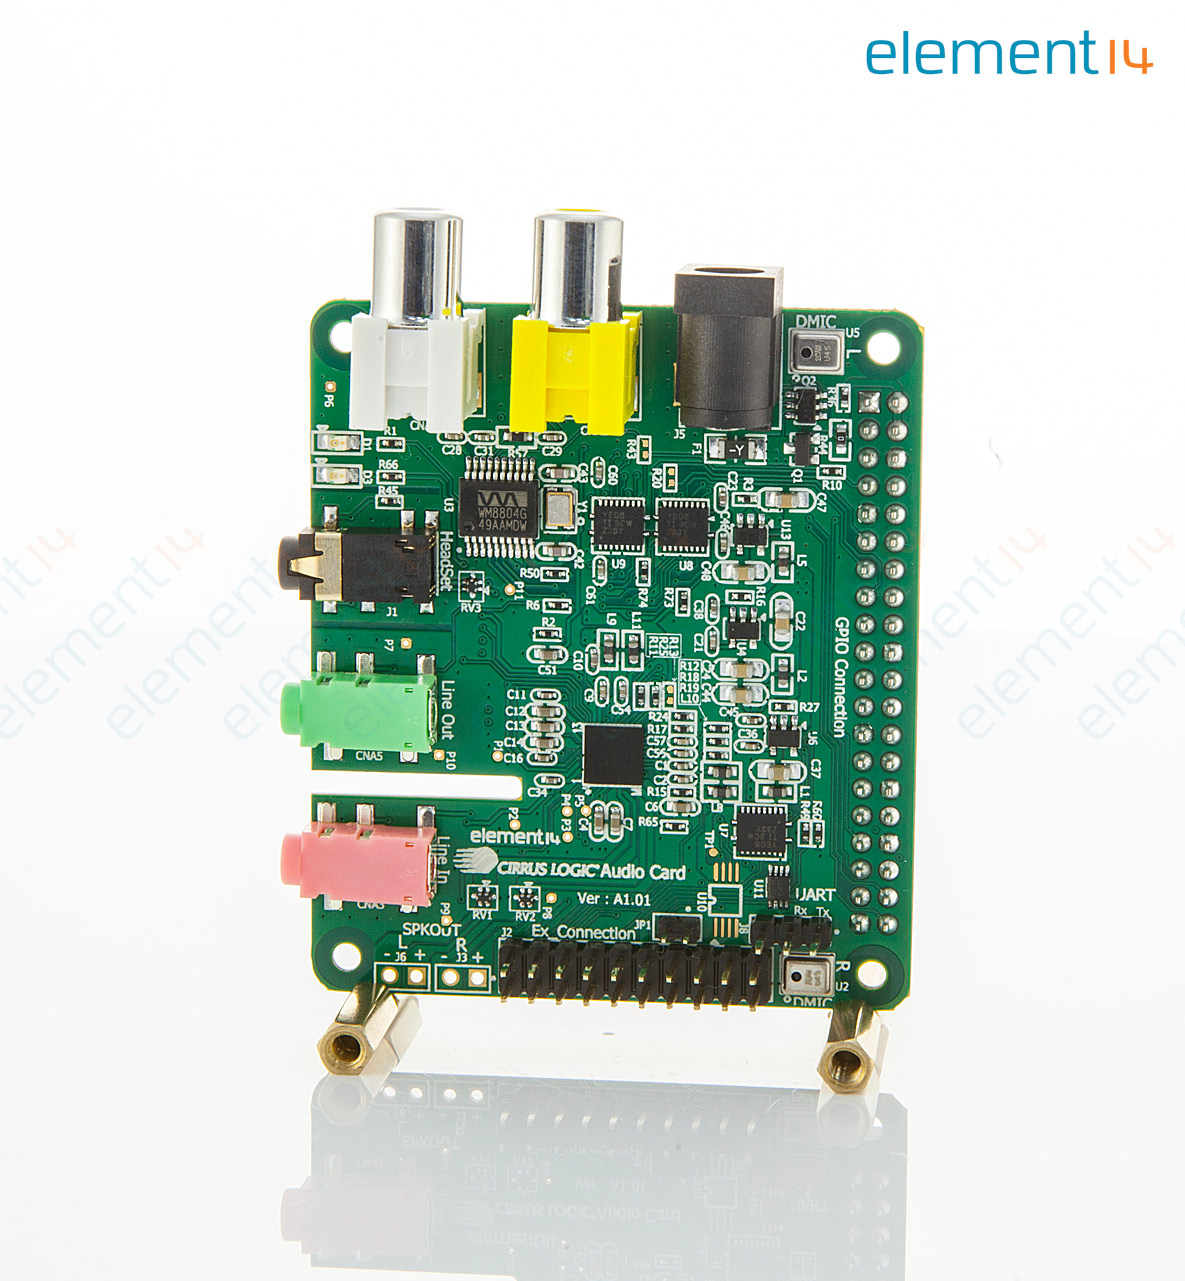 Cirrus Logic Audio Card Wolfson Microelectronics Daughter Board Live Sound Setup Diagram Related Keywords Suggestions For Raspberry Pi Stereo Digital Input Output